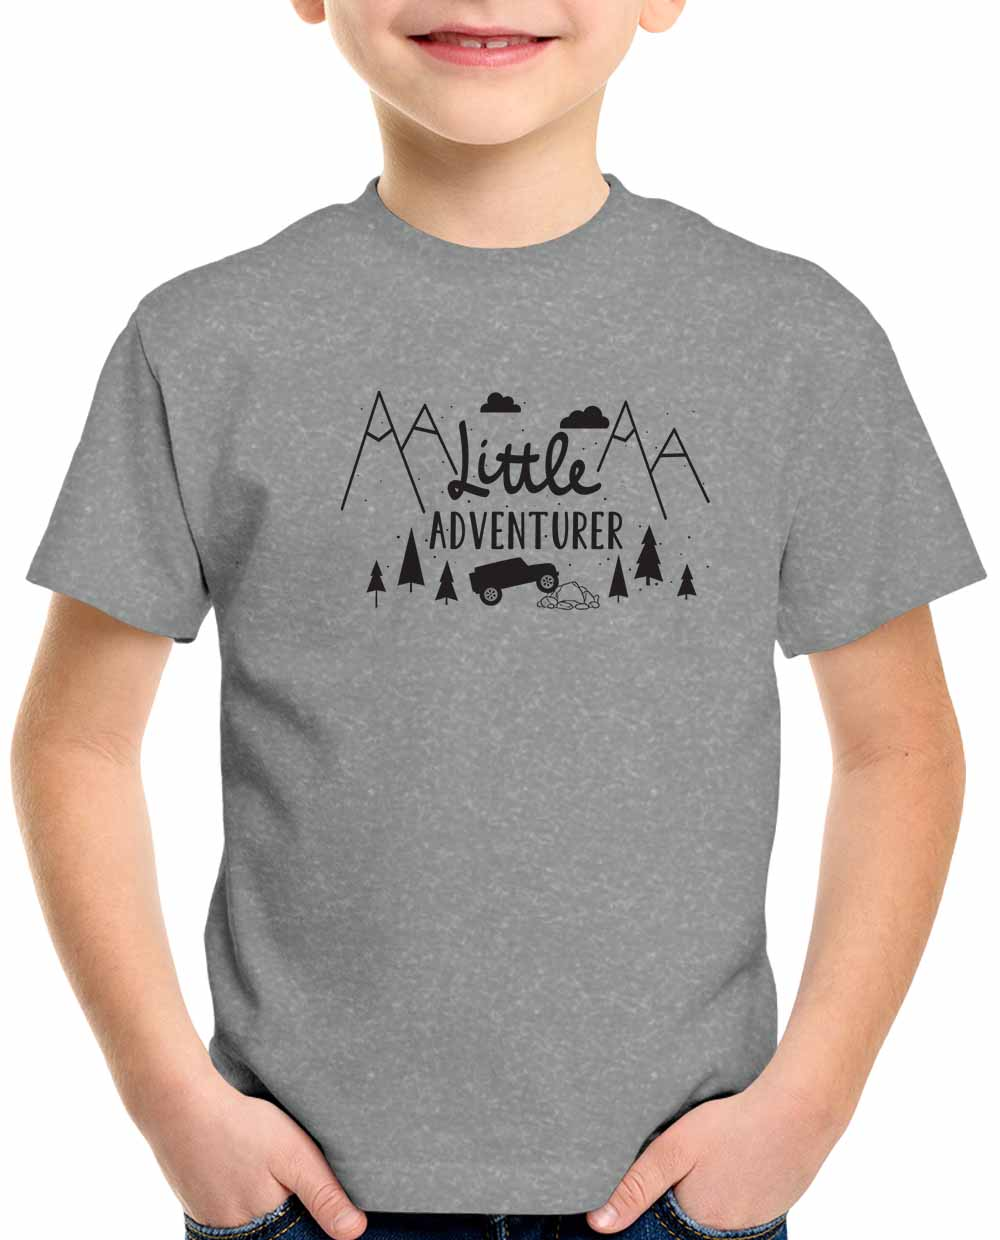 littleadventurer-jeep-kids-tee-shirt-ashe-gray